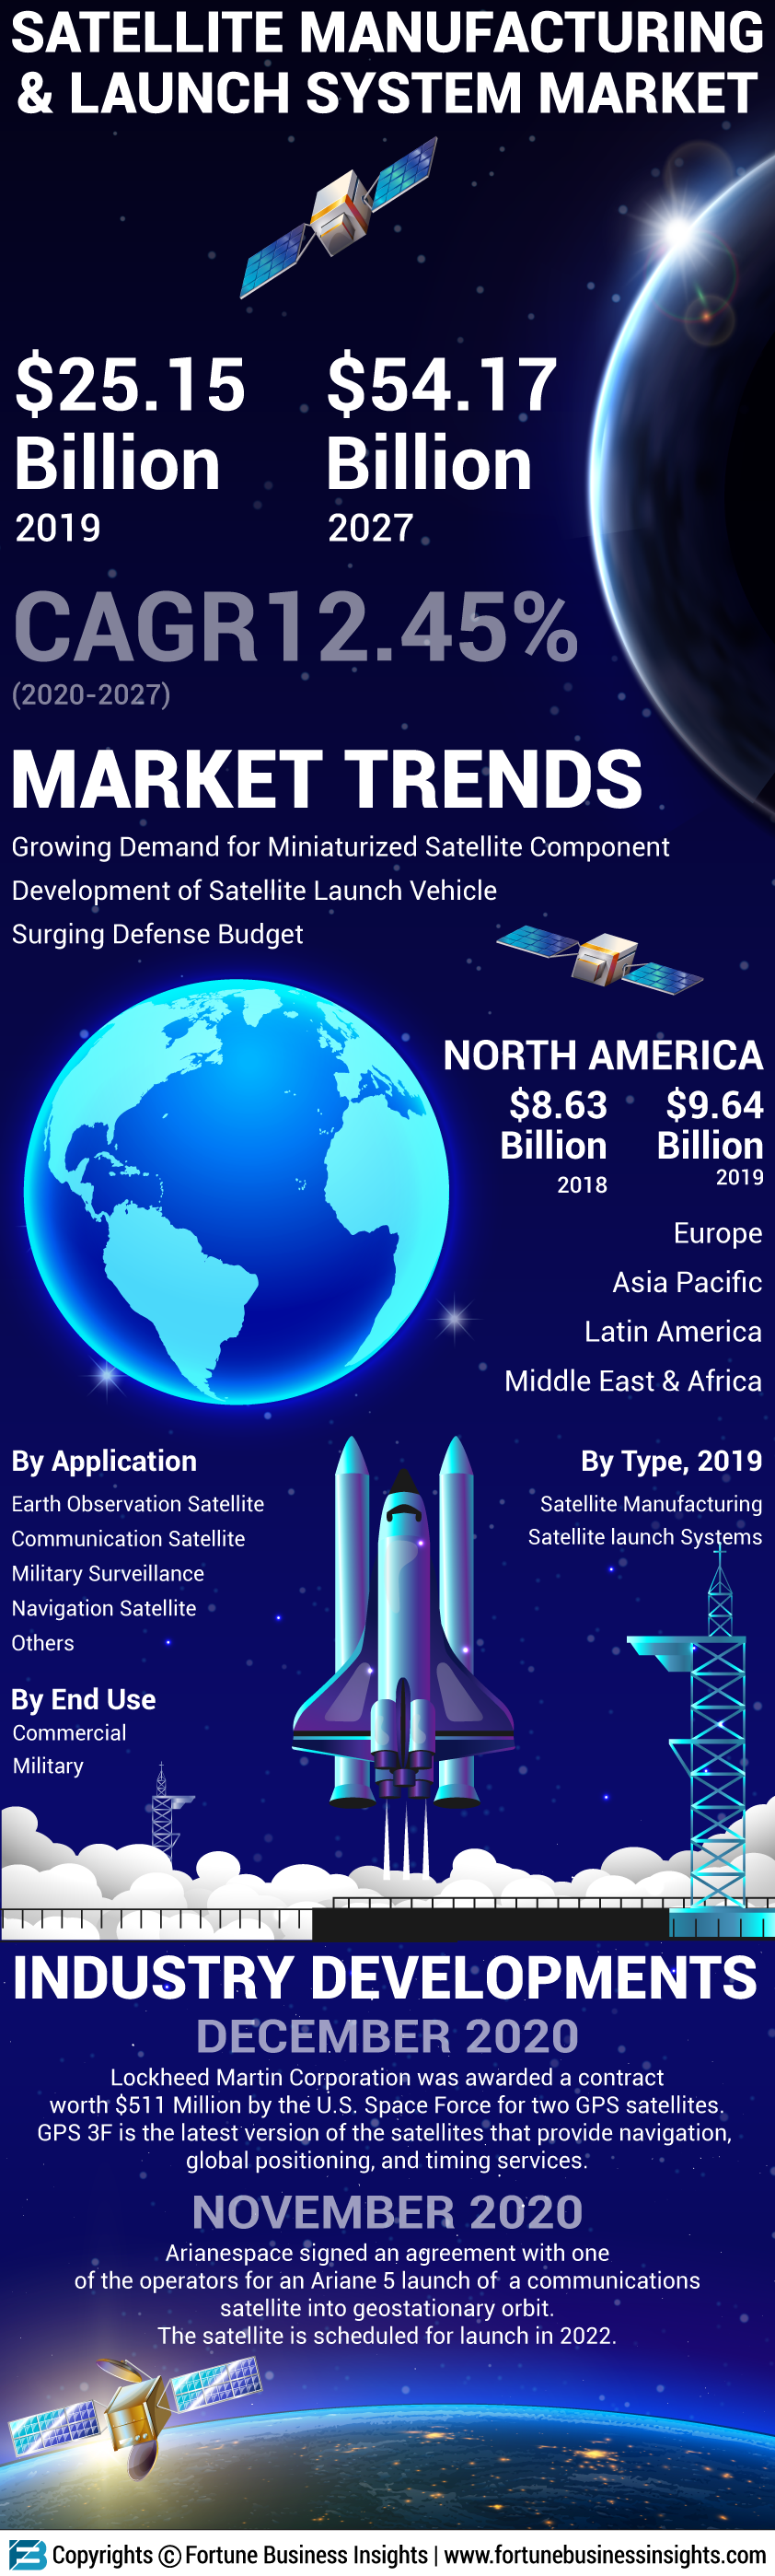 Satellite Manufacturing and Launch Systems Market